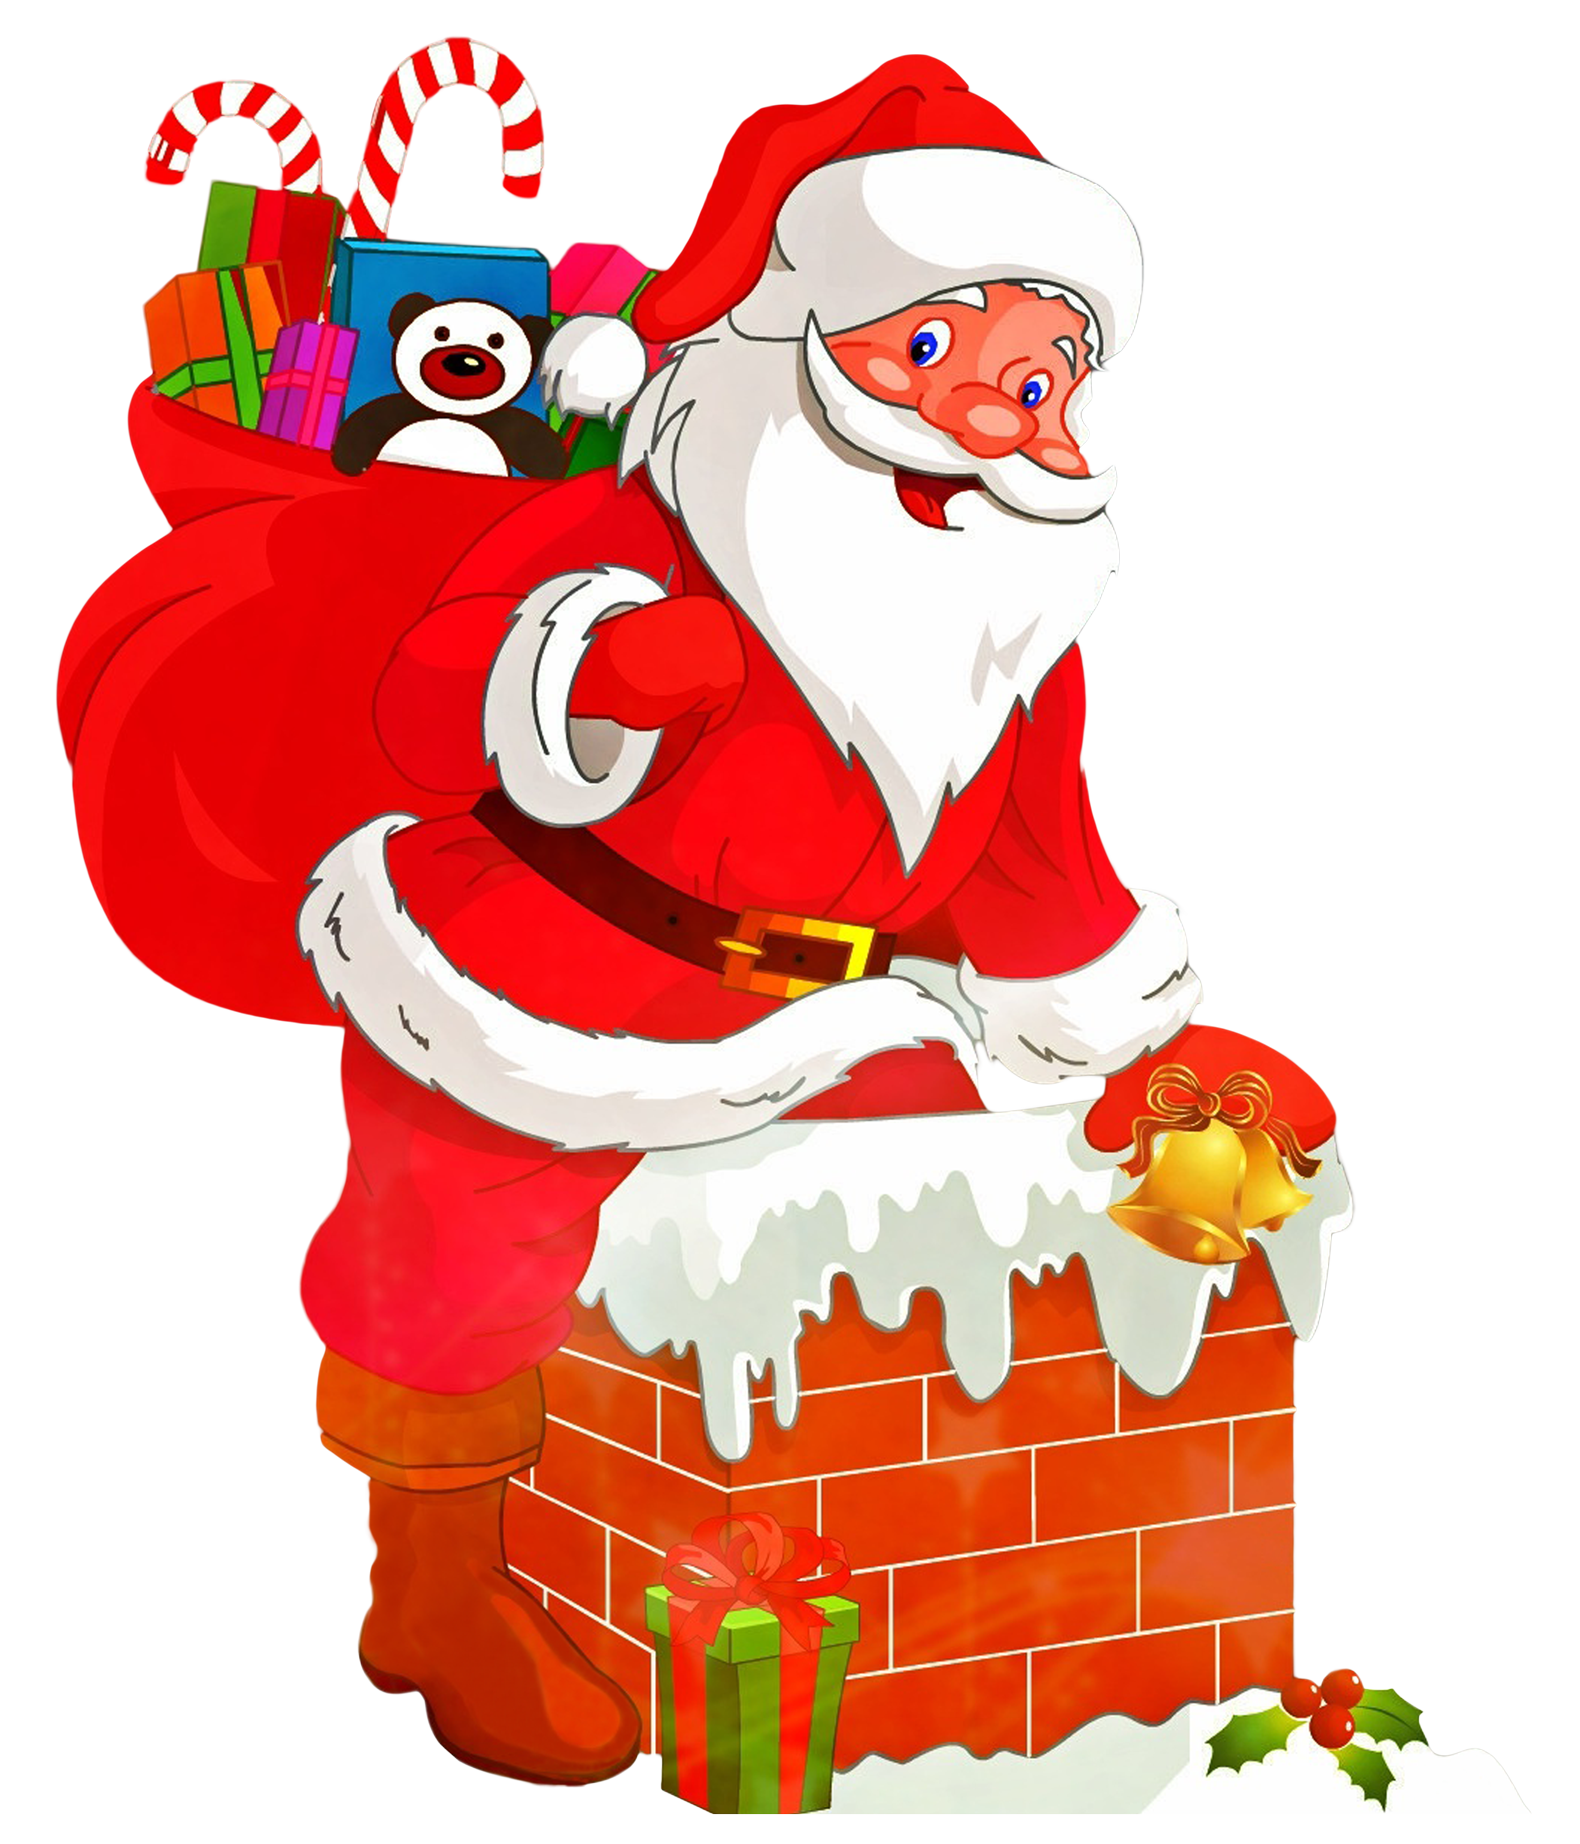 Santa Claus With Gifts PNG Transparent Image.